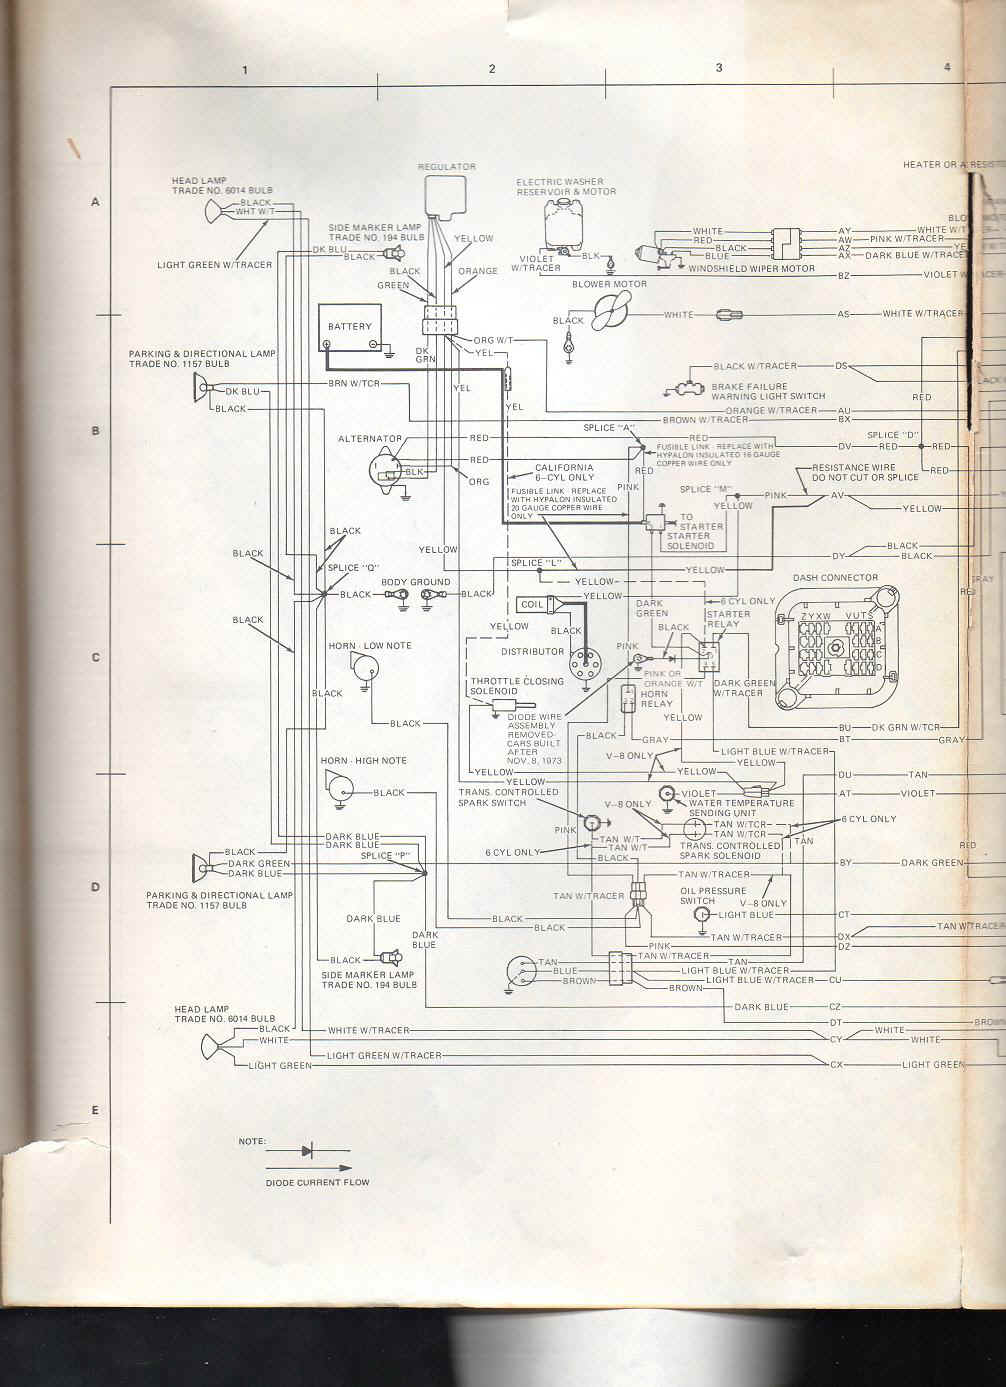 1972 amc javelin wiring diagram wiring diagrams 1972 Chevy Monte Carlo Wiring Diagram 1972 amc javelin wiring diagram wiring diagrams 1972 pontiac gto wiring diagram 1972 amc javelin wiring diagram